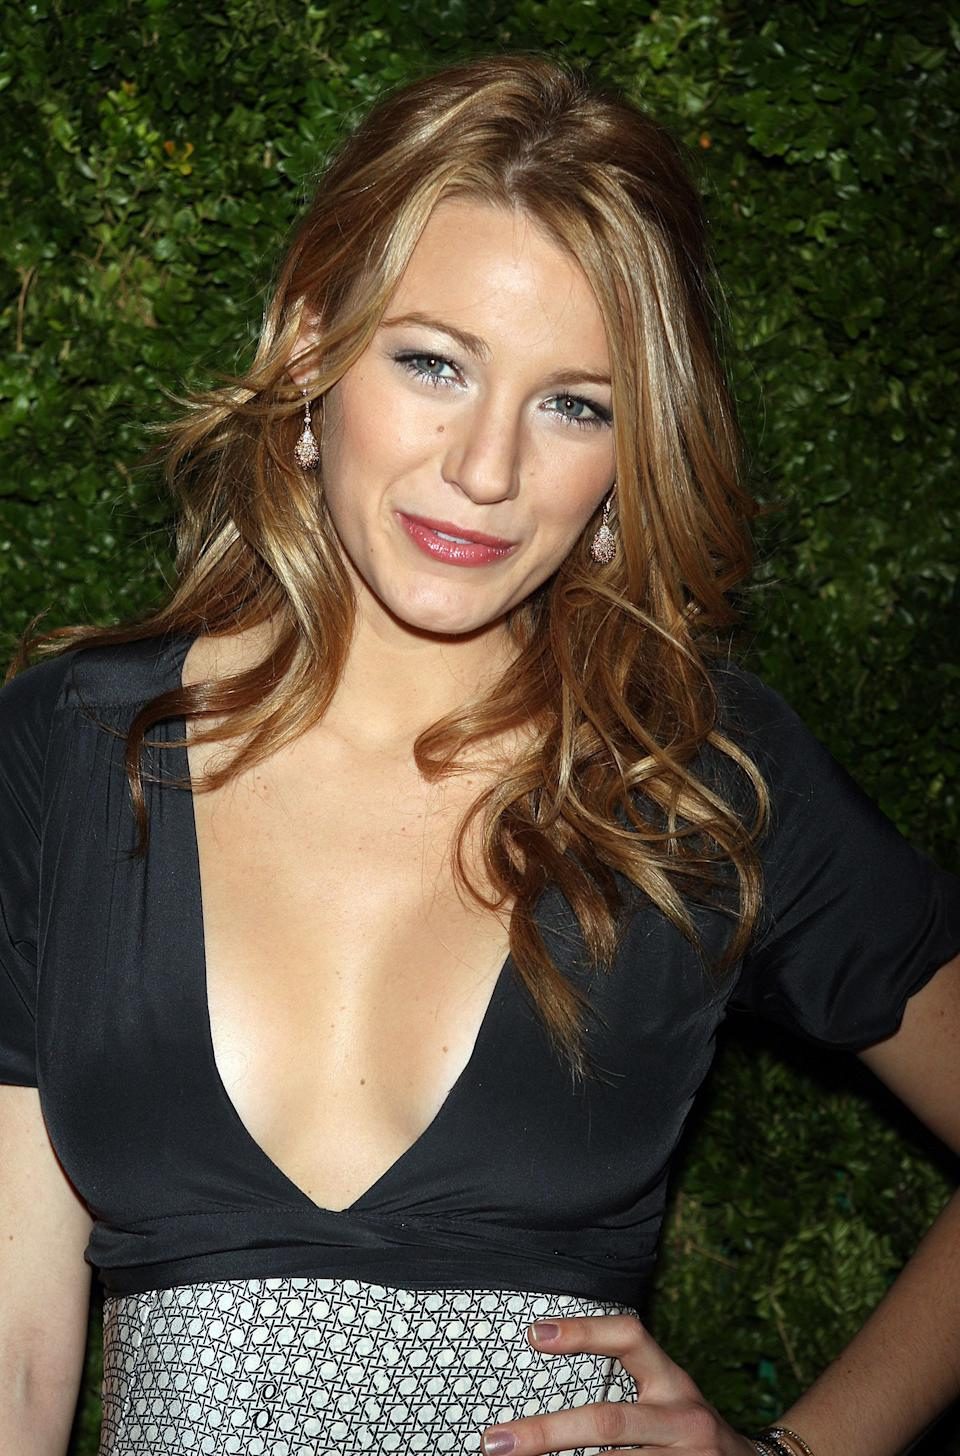 NEW YORK - NOVEMBER 17:  Blake Lively attends the 5th Anniversary of the CFDA/Vogue Fashion Fund at Skylight Studios on November 17, 2008 in New York City.  (Photo by Scott Gries/Getty Images)